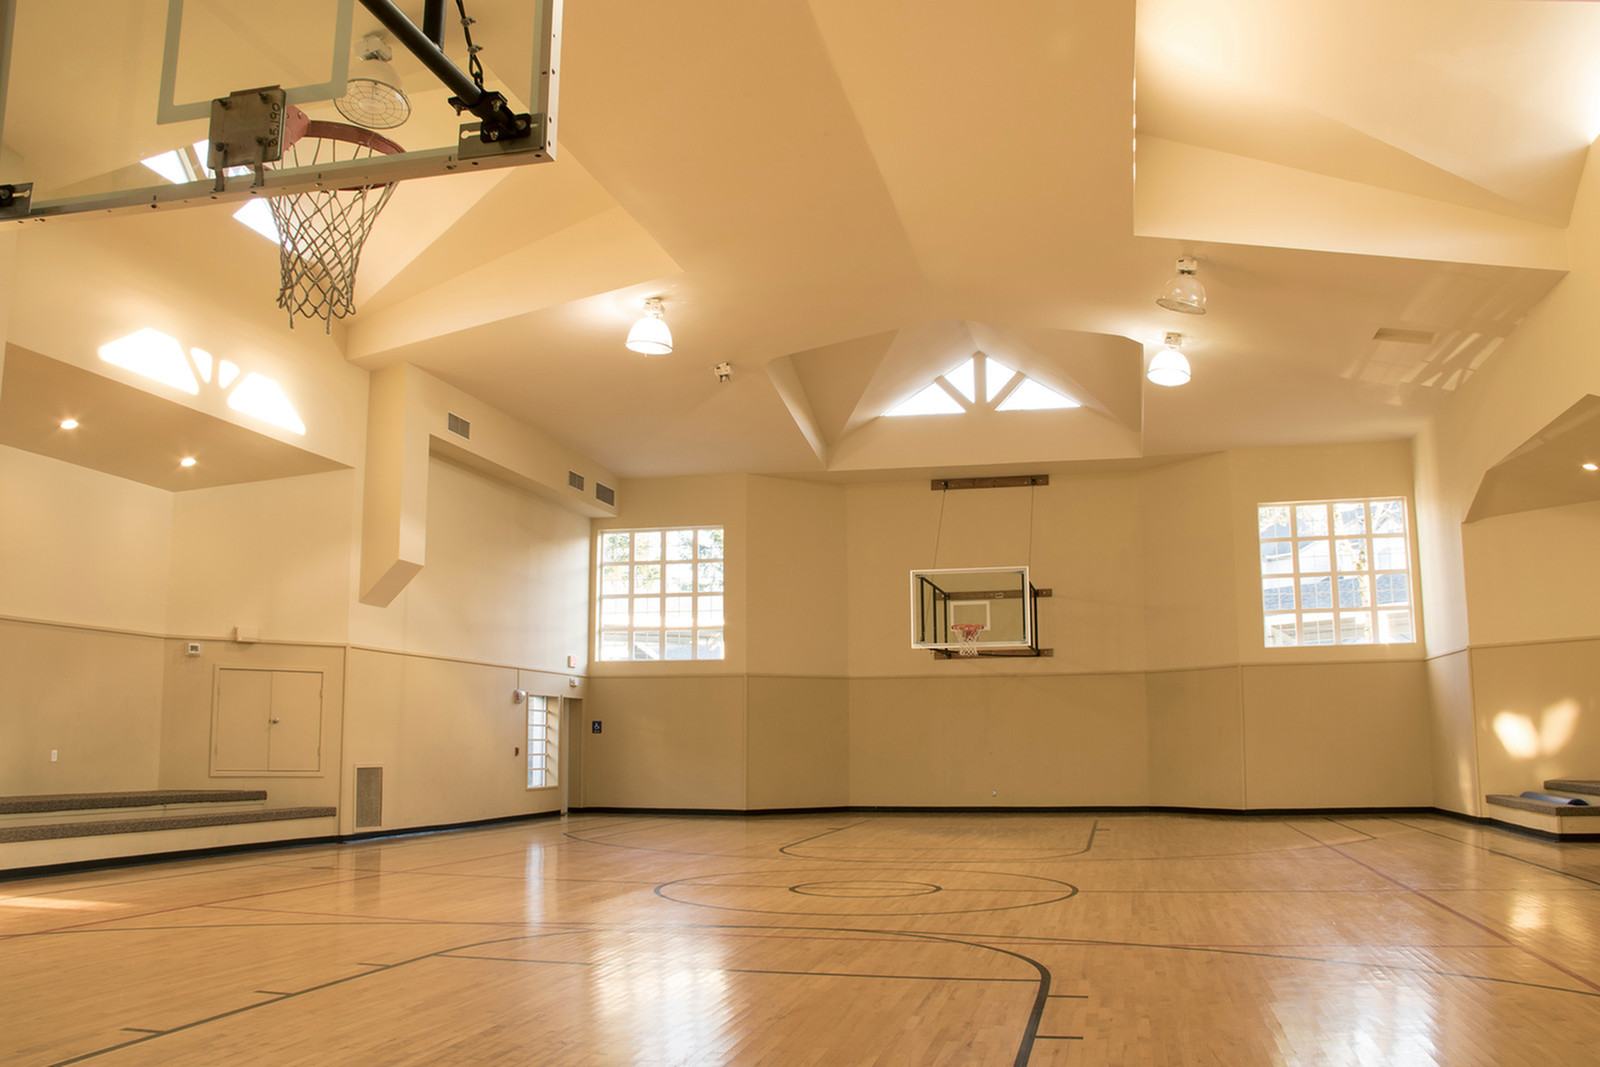 Canyon Park Basketball Court | Puyallup WA Apartments For Rent | Canyon Park